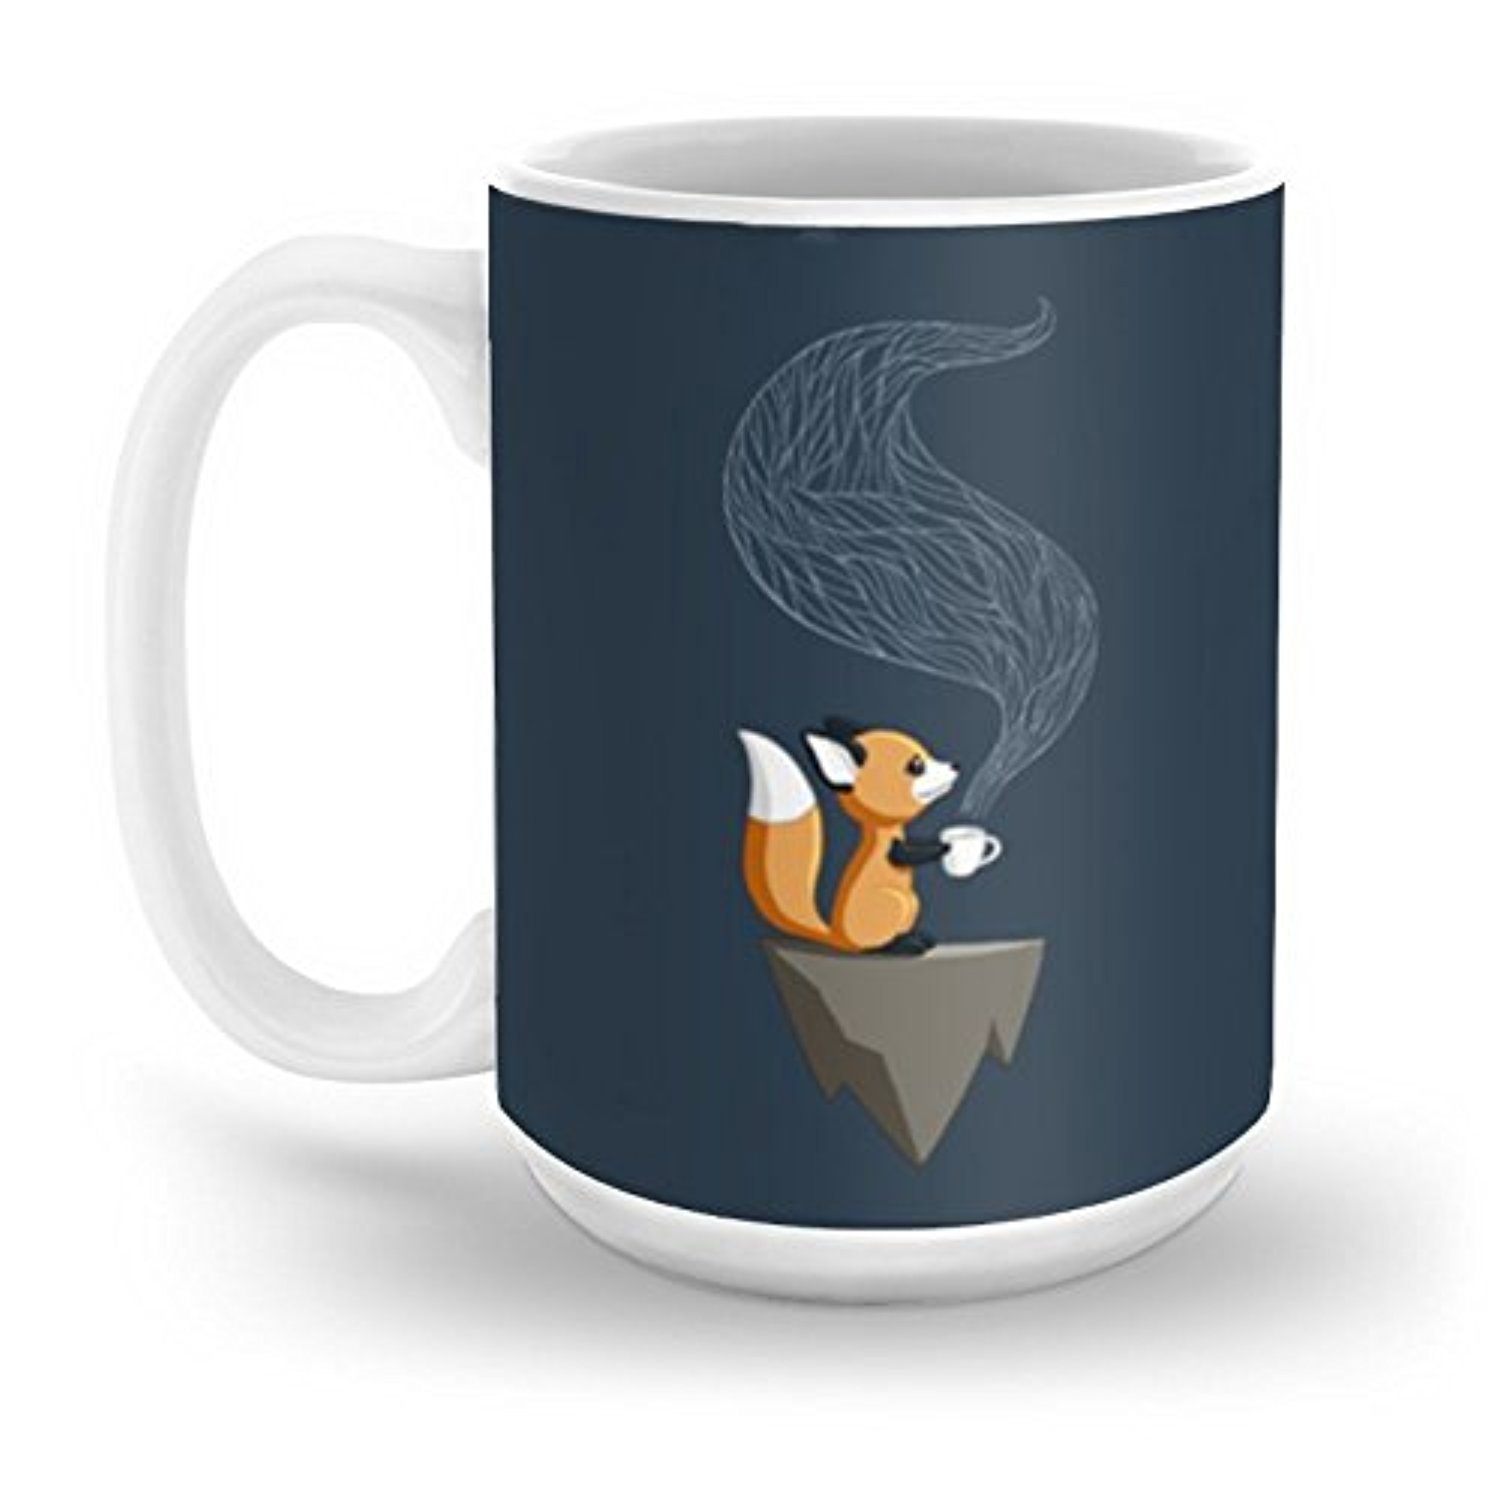 ◎送料込◎ Society6 Fox Tea Mug 15 oz